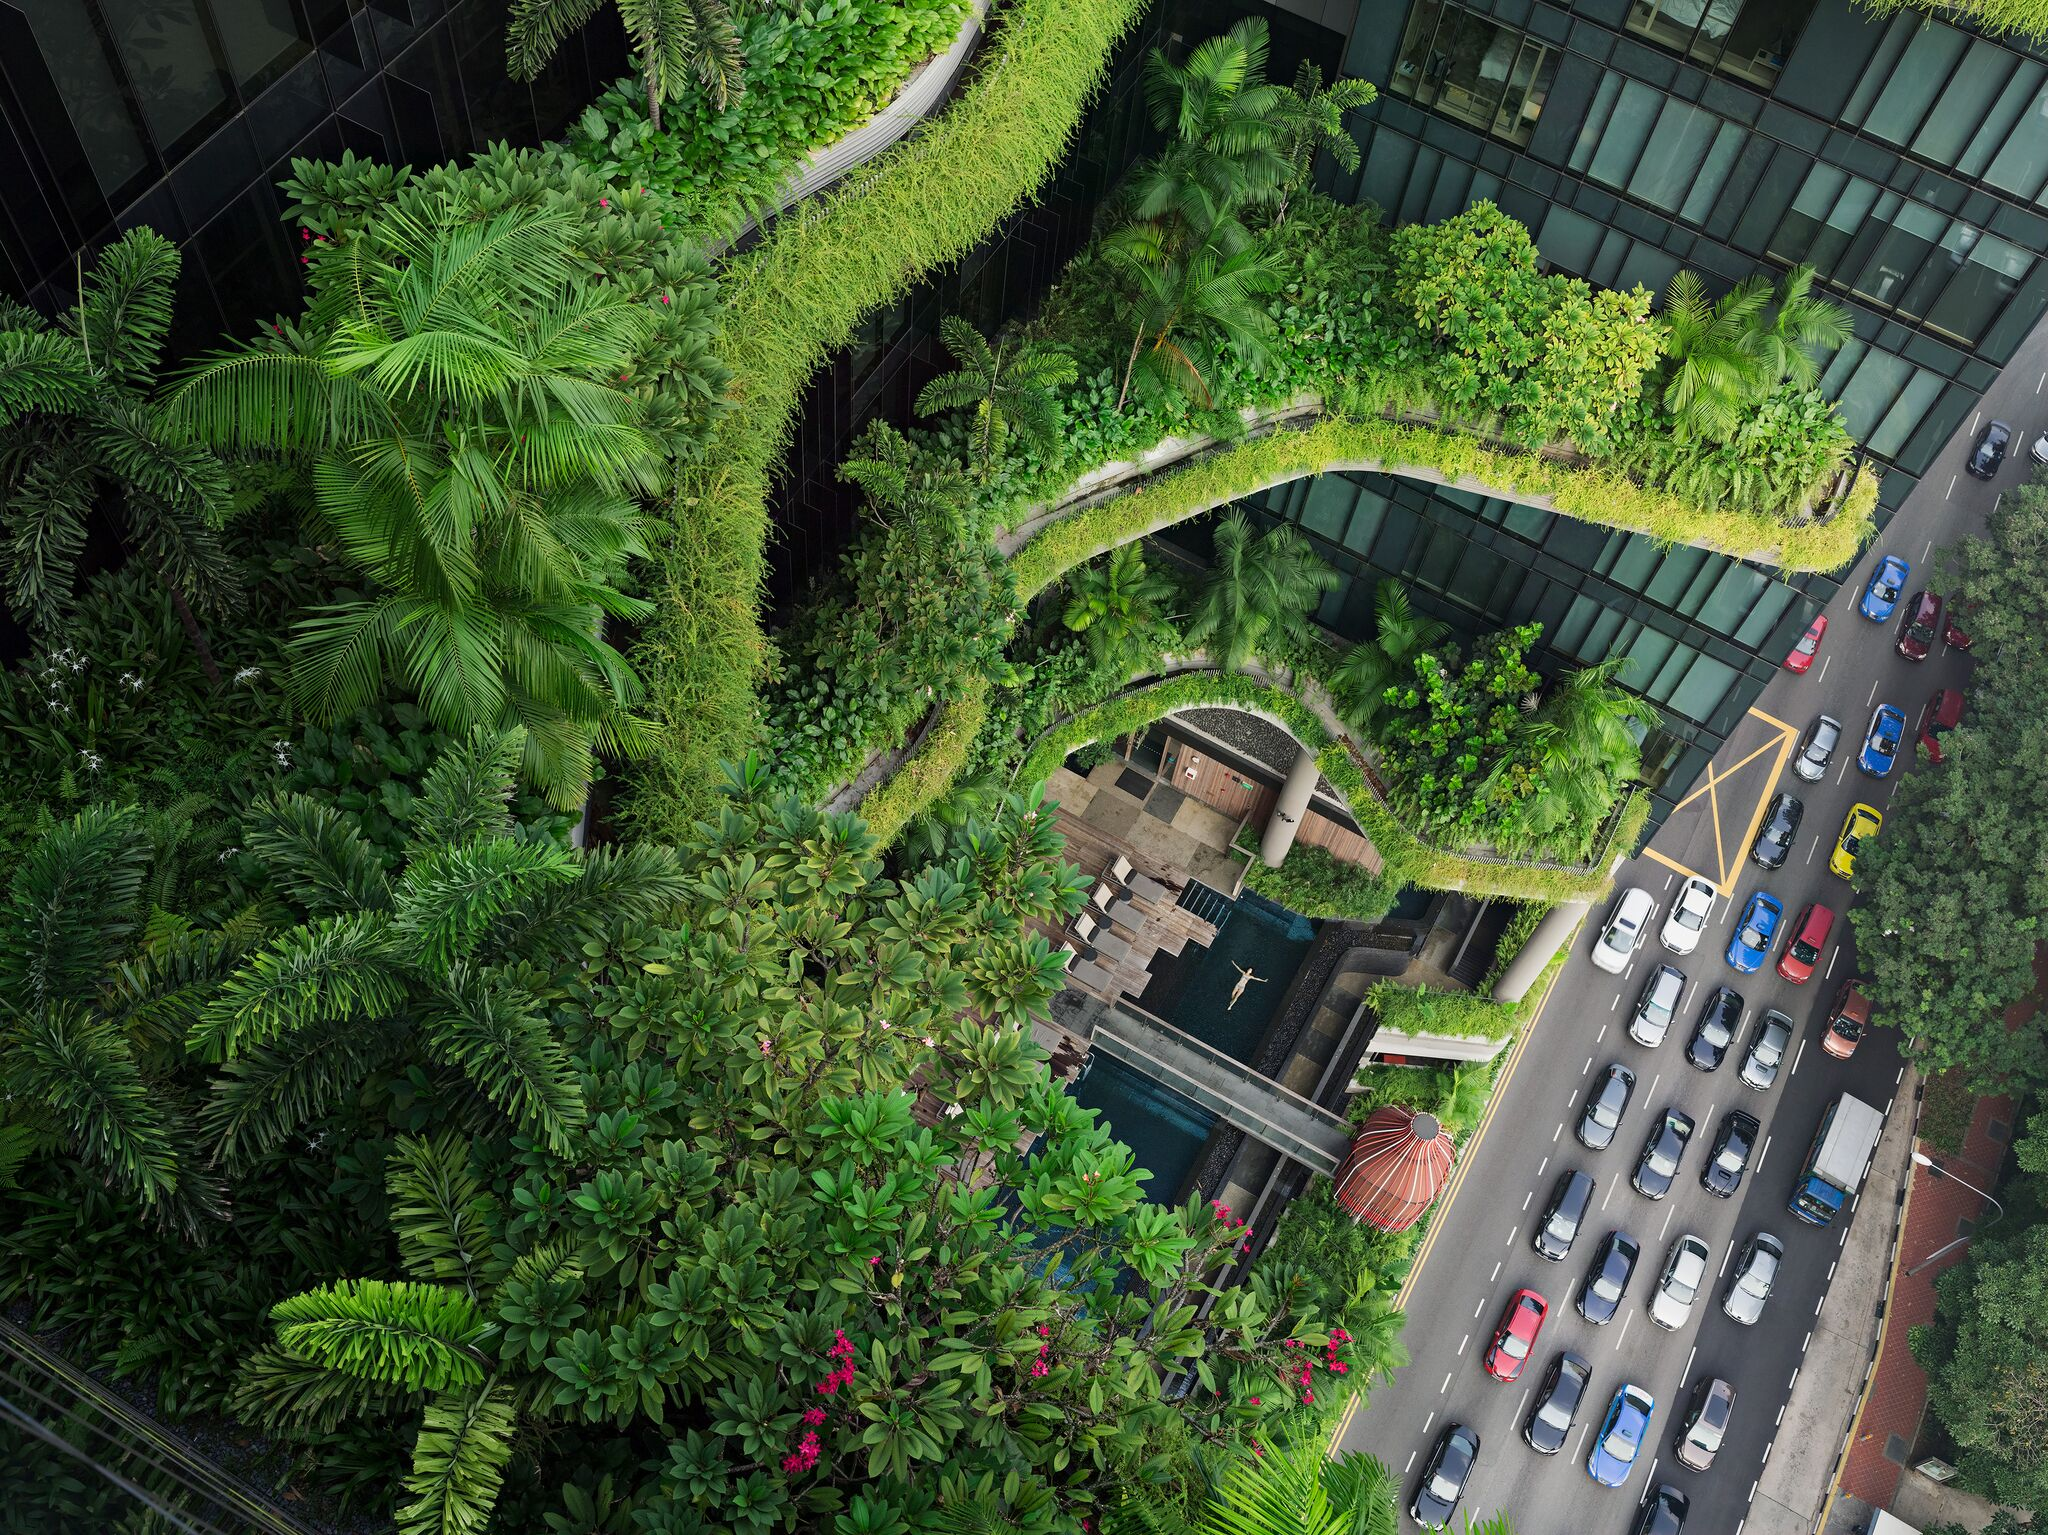 - Esme Swimming, Parkroyal on Pickering, Singapore © Lucas Foglia. Courtesy of Michael Hoppen Galle